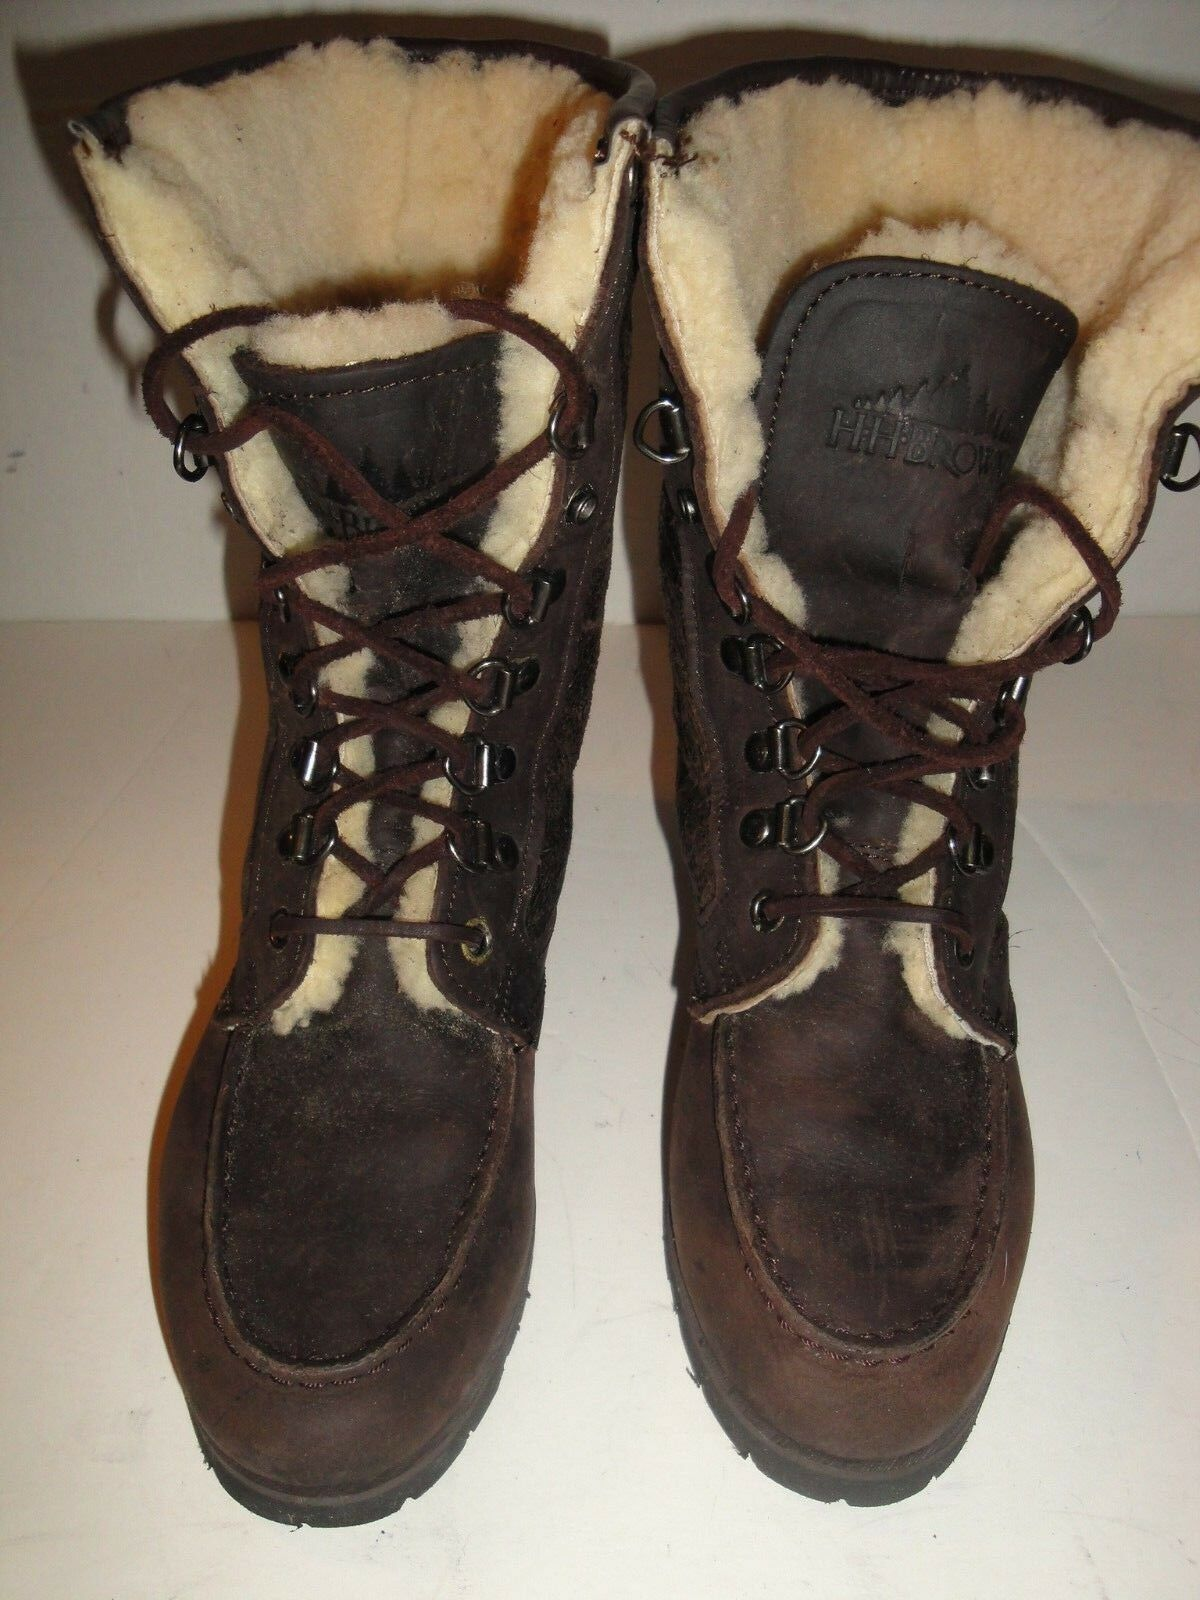 H.H.B. BROWN LEATHER BOOT SHEEPSKIN LINED WOMENS SHOE SIZE 6.5 M